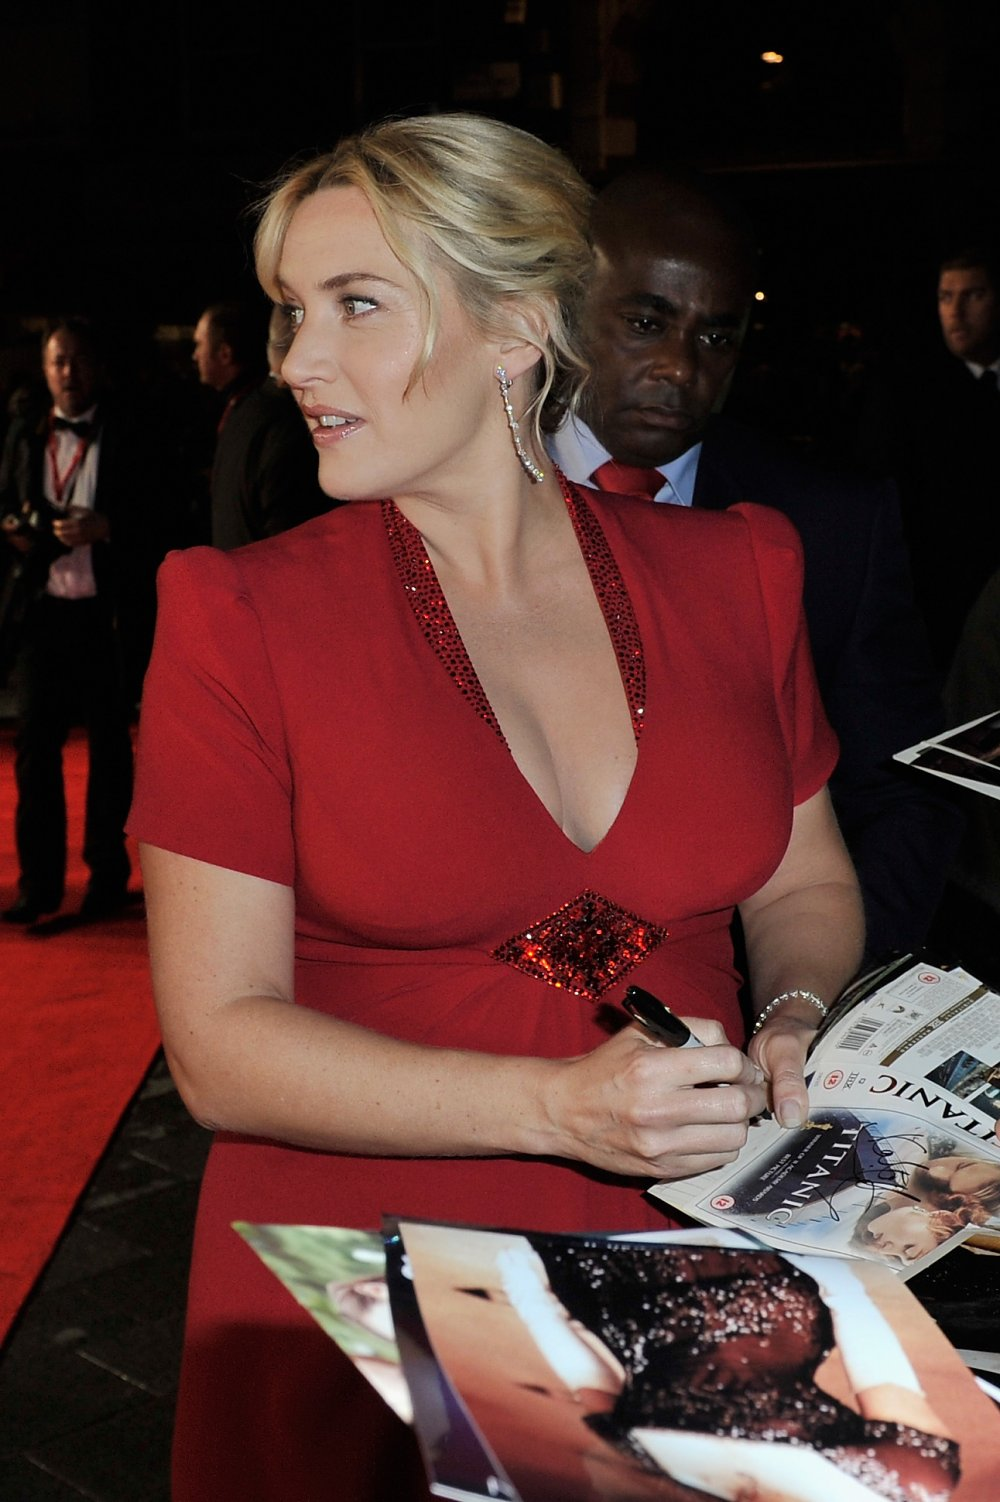 Kate Winslet attends a screening of Labor Day (2013) during the 57th BFI London Film Festival at Odeon Leicester Square.